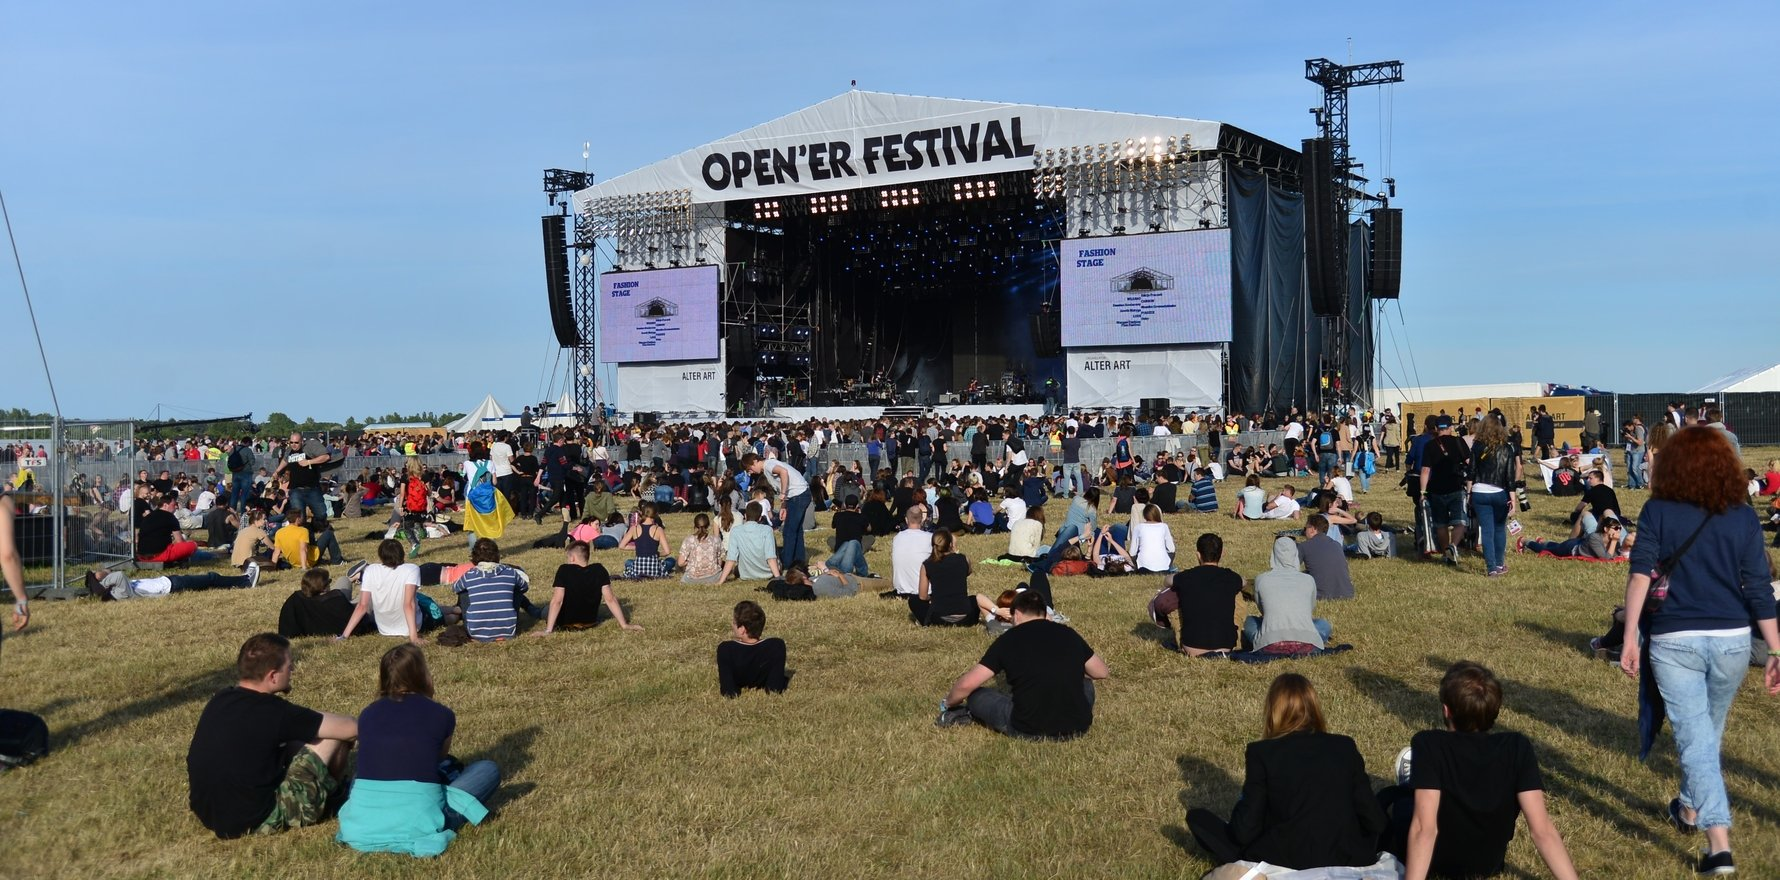 Open'er Festival - Photo By D. Nelke, Courtesy of the City of Gdynia